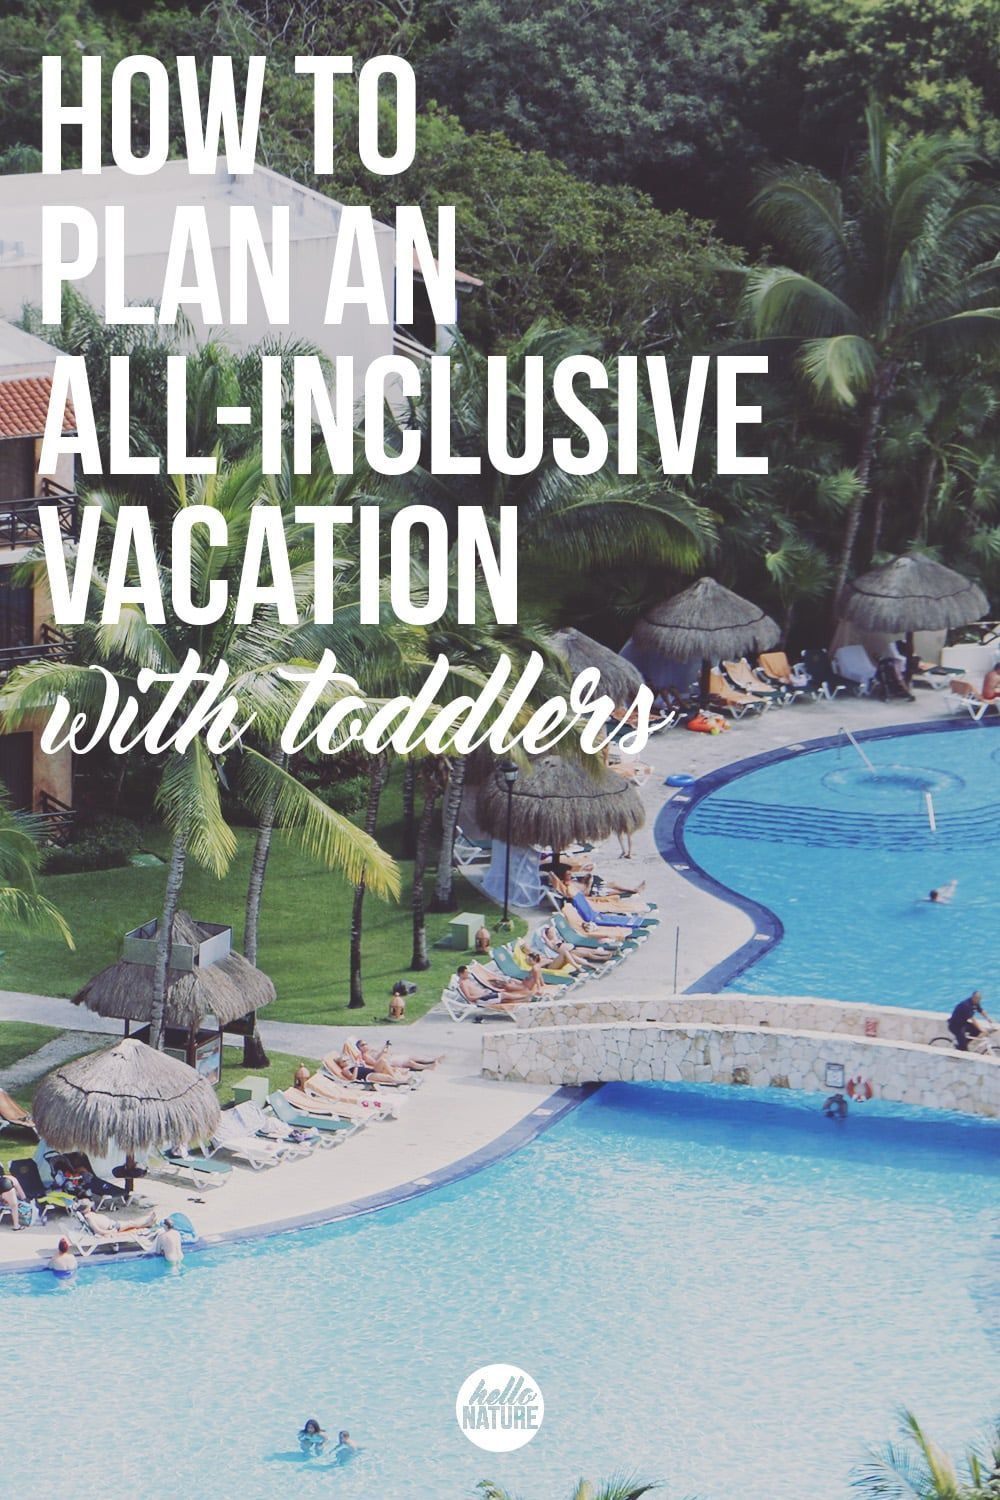 How to Plan an All-Inclusive Vacation with Toddlers: Simple travel tips to make it the an easy family trip. Youll be able to enjoy all of the activities that the resort has to offer your whole family! #style #shopping #styles #outfit #pretty #girl #girls #beauty #beautiful #me #cute #stylish #photooftheday #swag #dress #shoes #diy #design #fashion #Travel